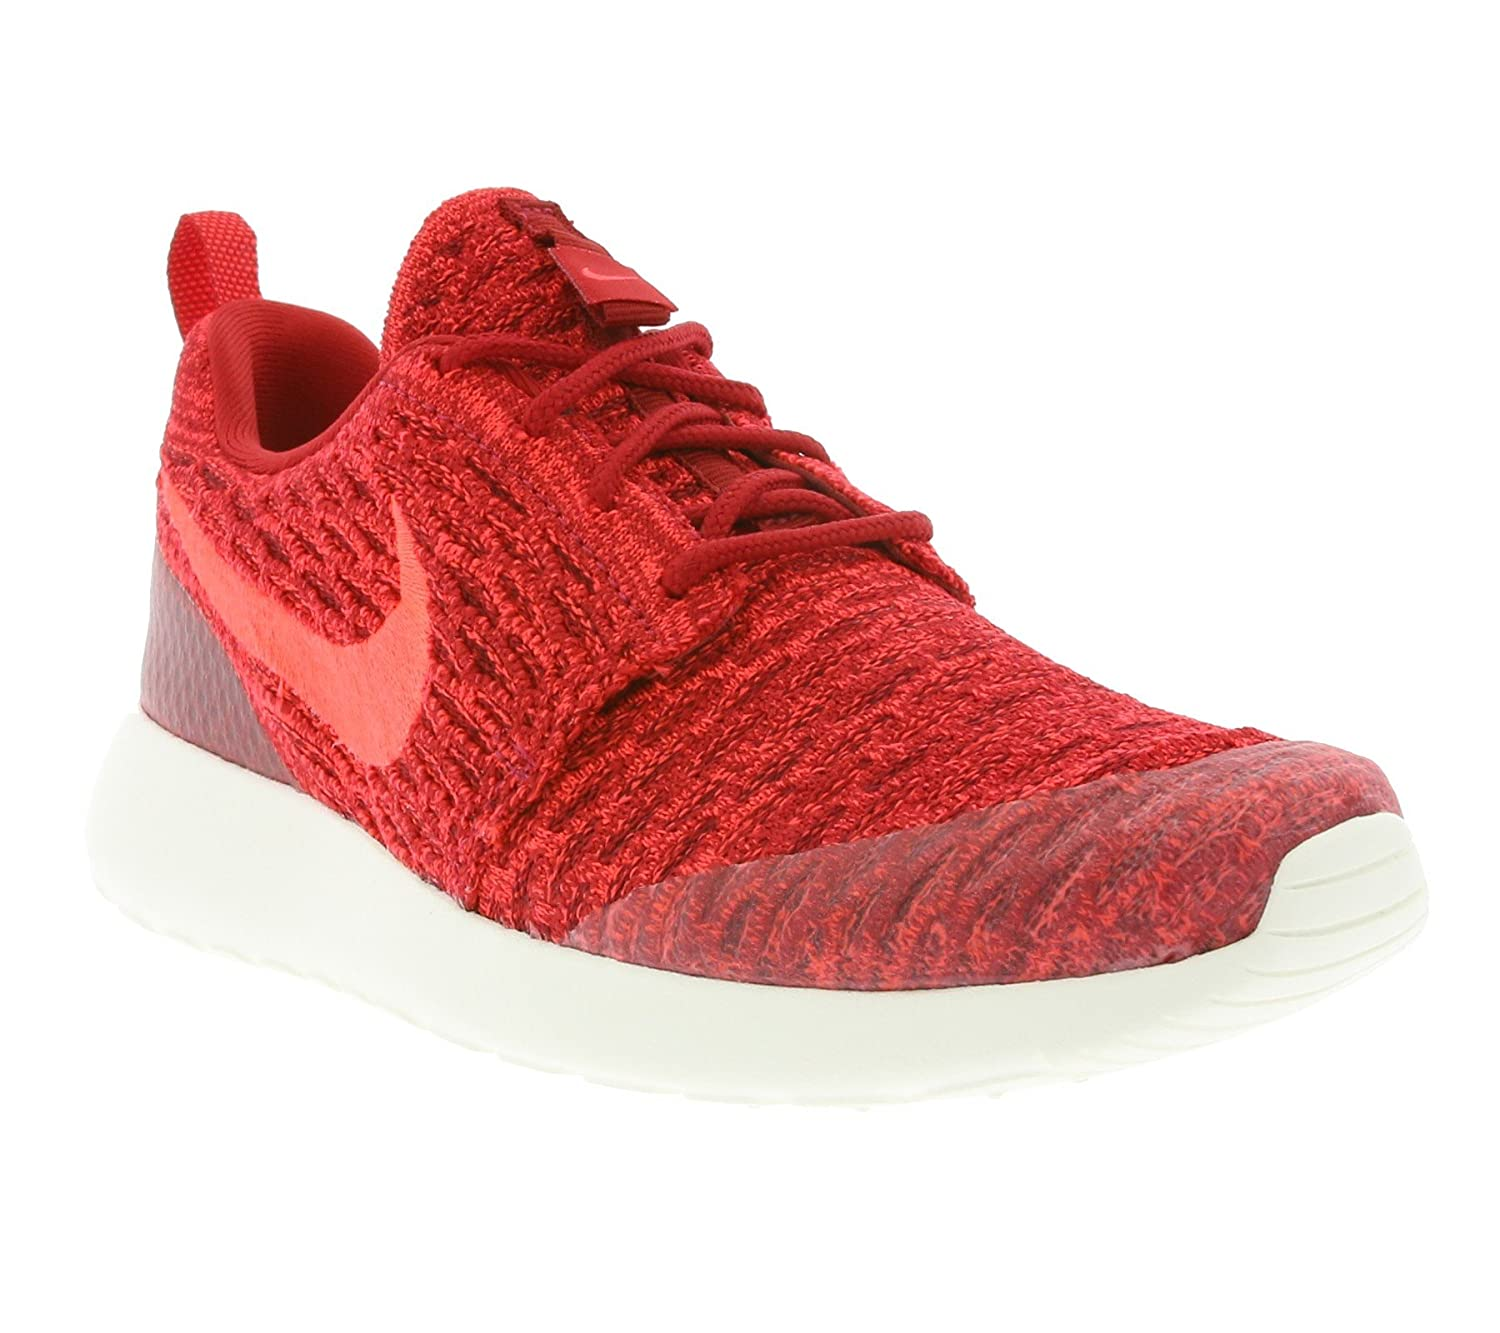 NIKE Shoes Womens Roshe One Flyknit Flyknit Colorblock Running Shoes NIKE B01AZL6NT0 9.5 B(M) US|Red 4e052e